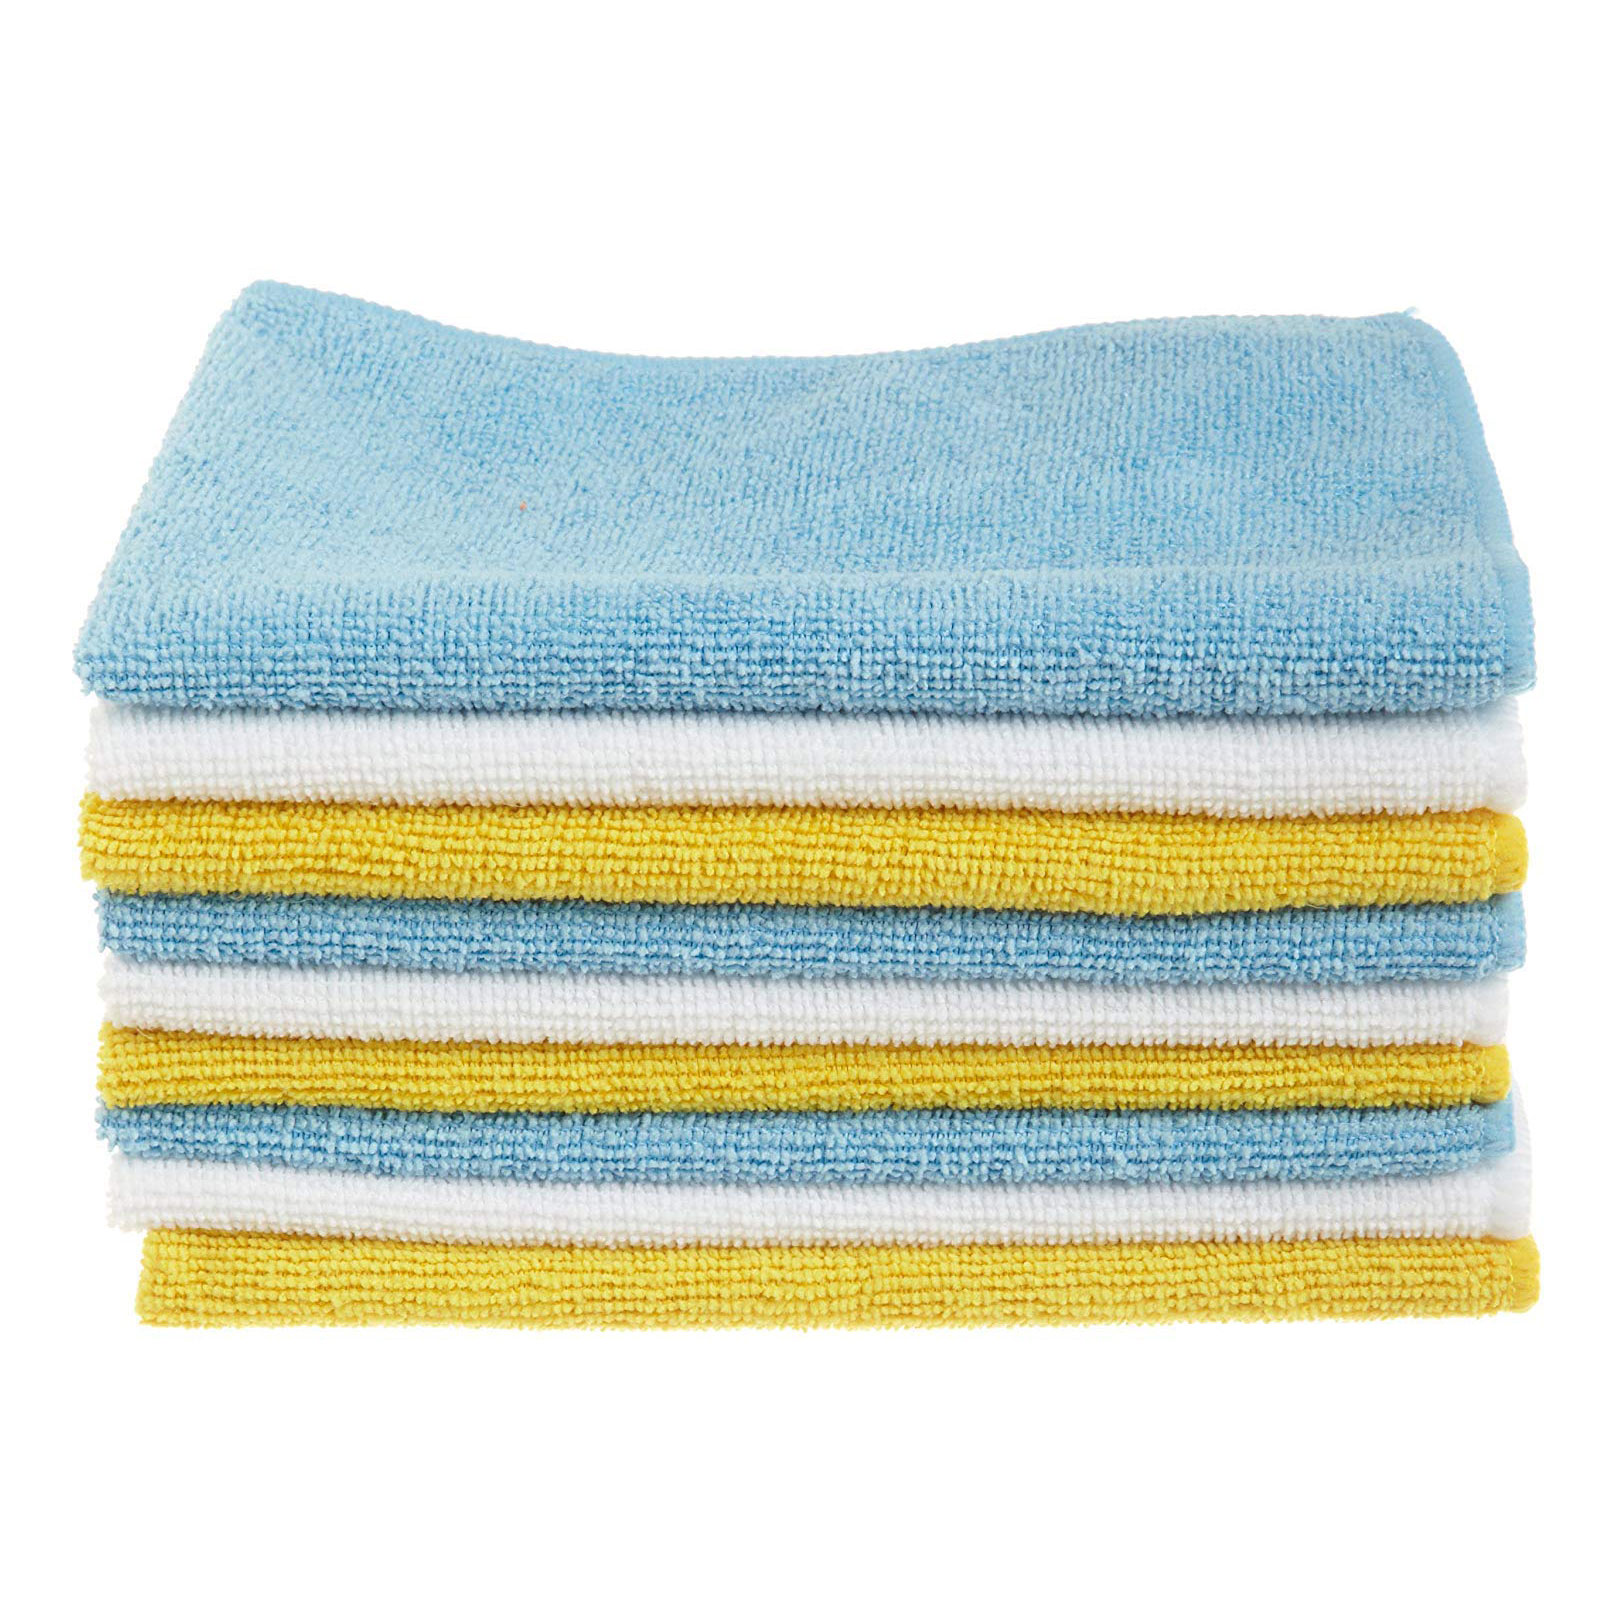 AmazonBasics Blue and Yellow Microfiber Cleaning Cloth, 24